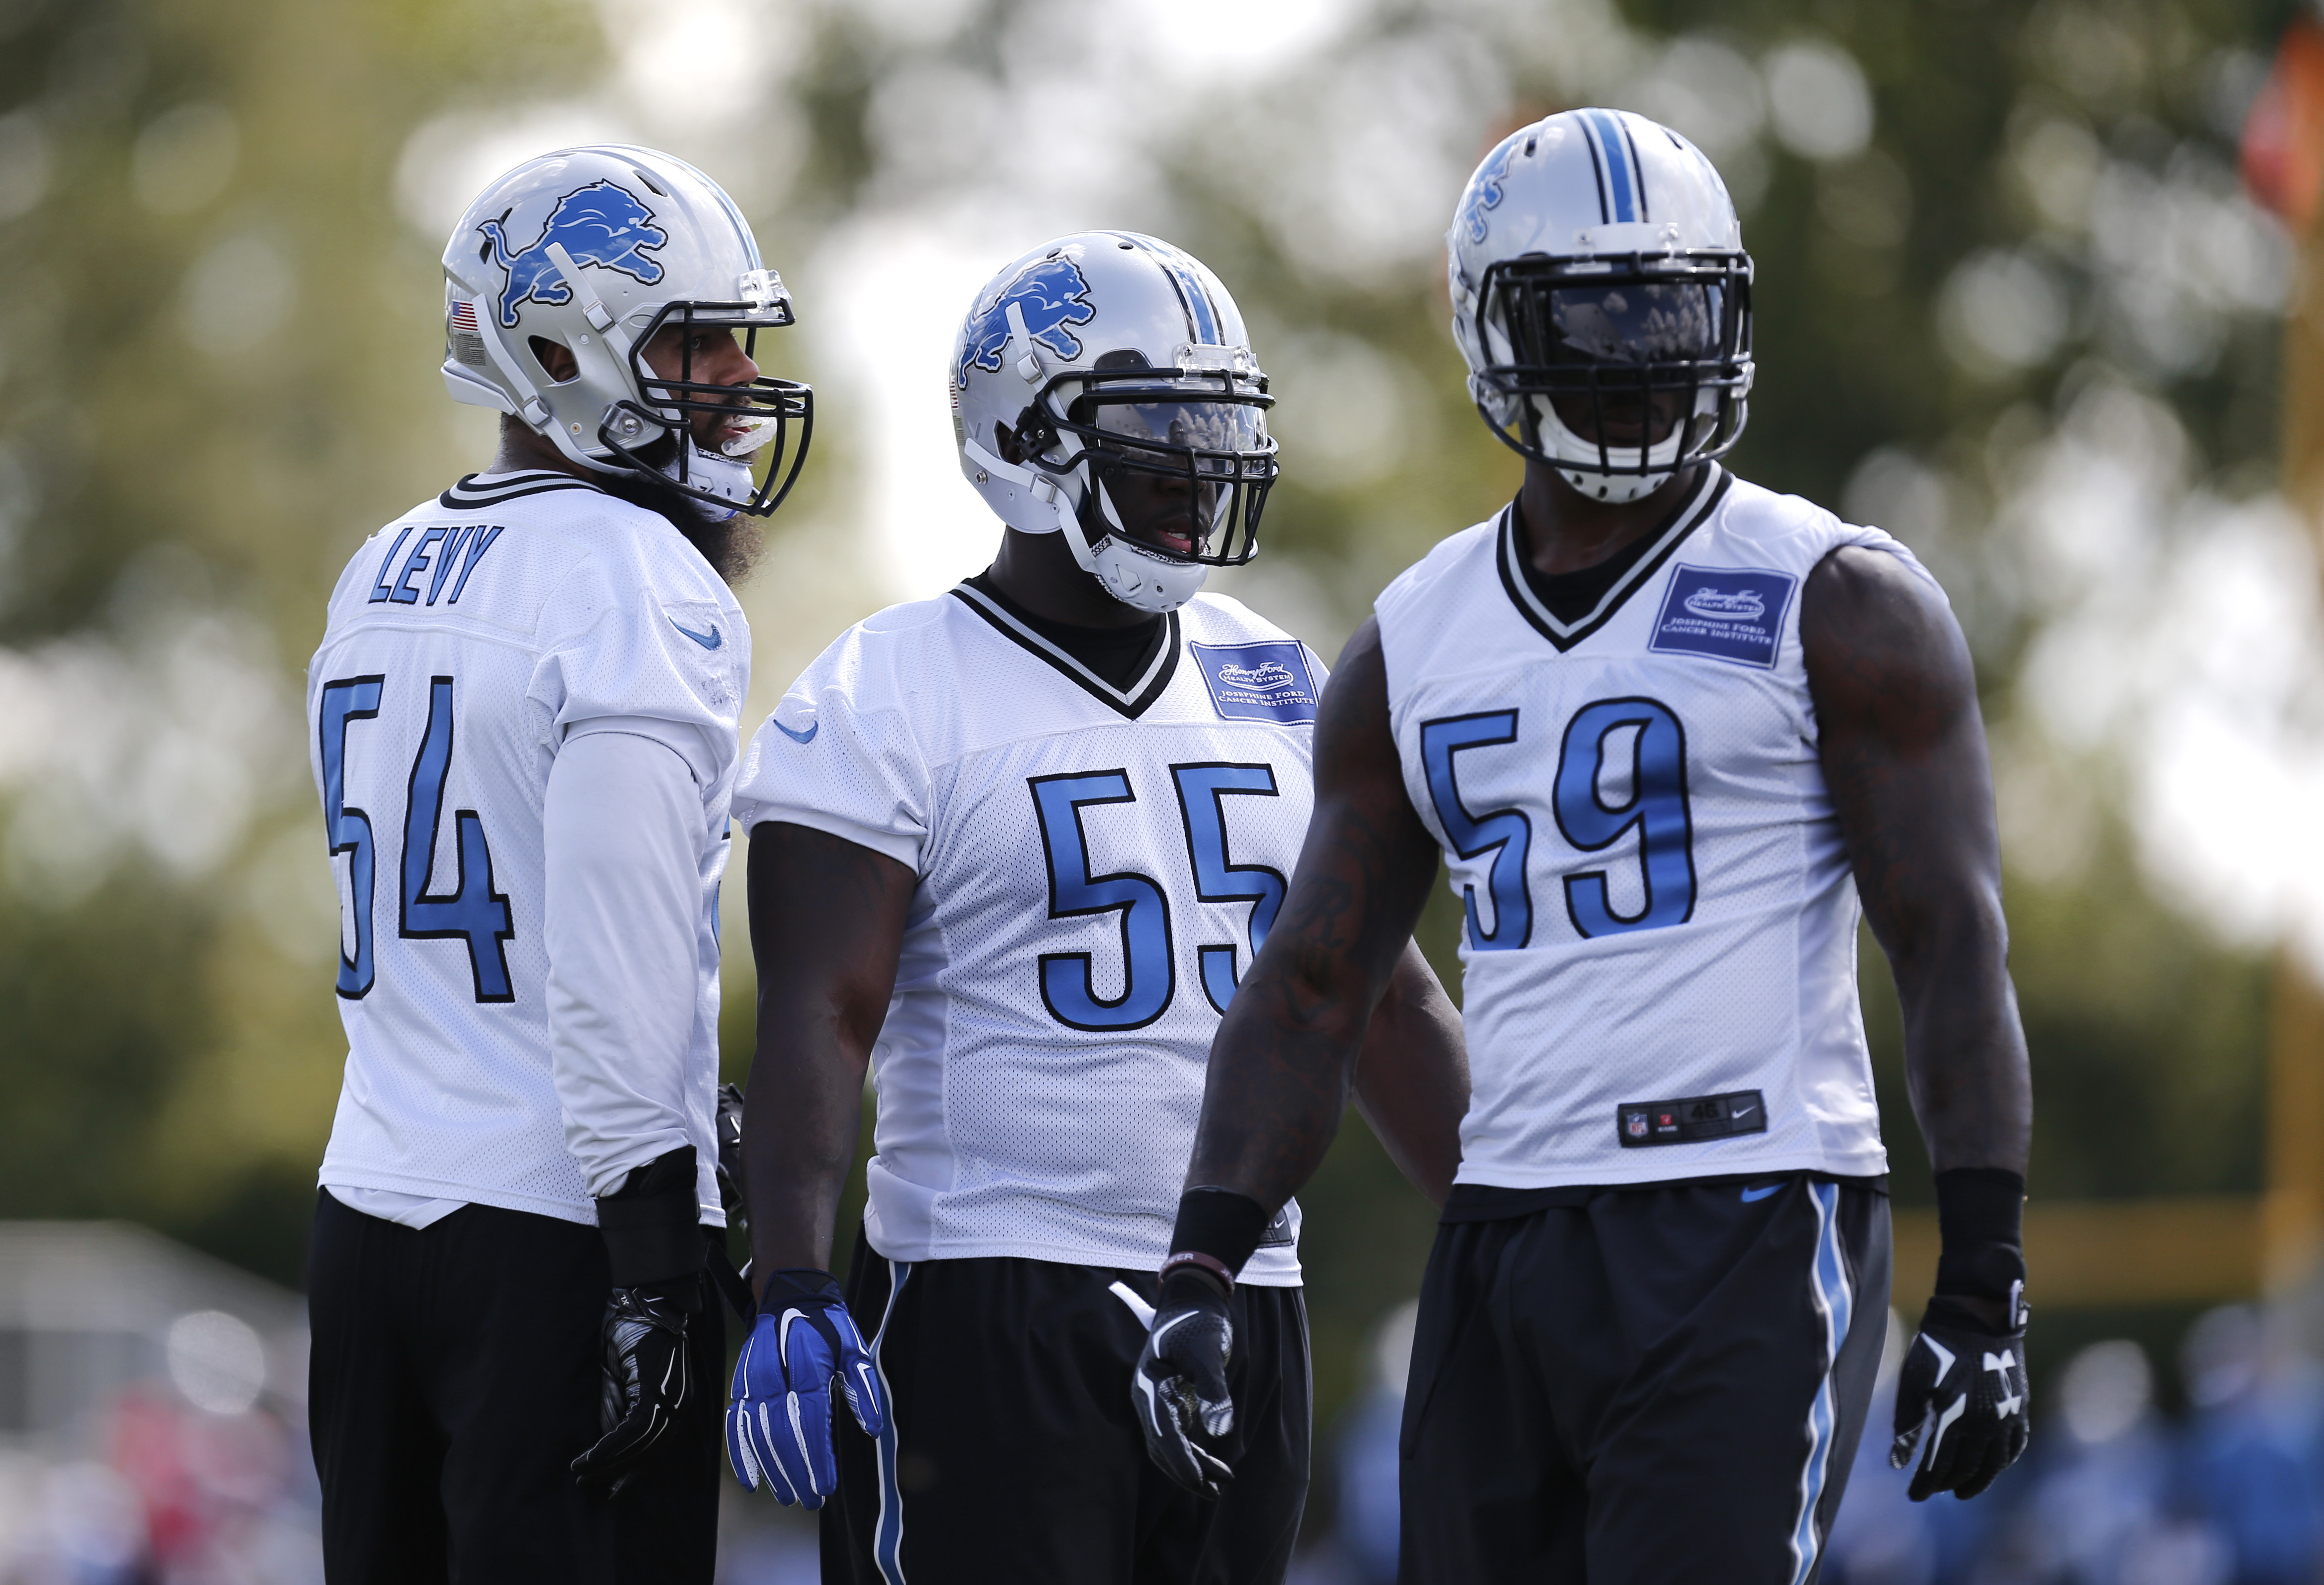 Detroit Lions linebackers DeAndre Levy, from left, Stephen Tulloch and Tahir Whitehead lineup during NFL football training camp in Allen Park, Mich., Tuesday, Aug. 4, 2015.  (AP Photo/Paul Sancya)